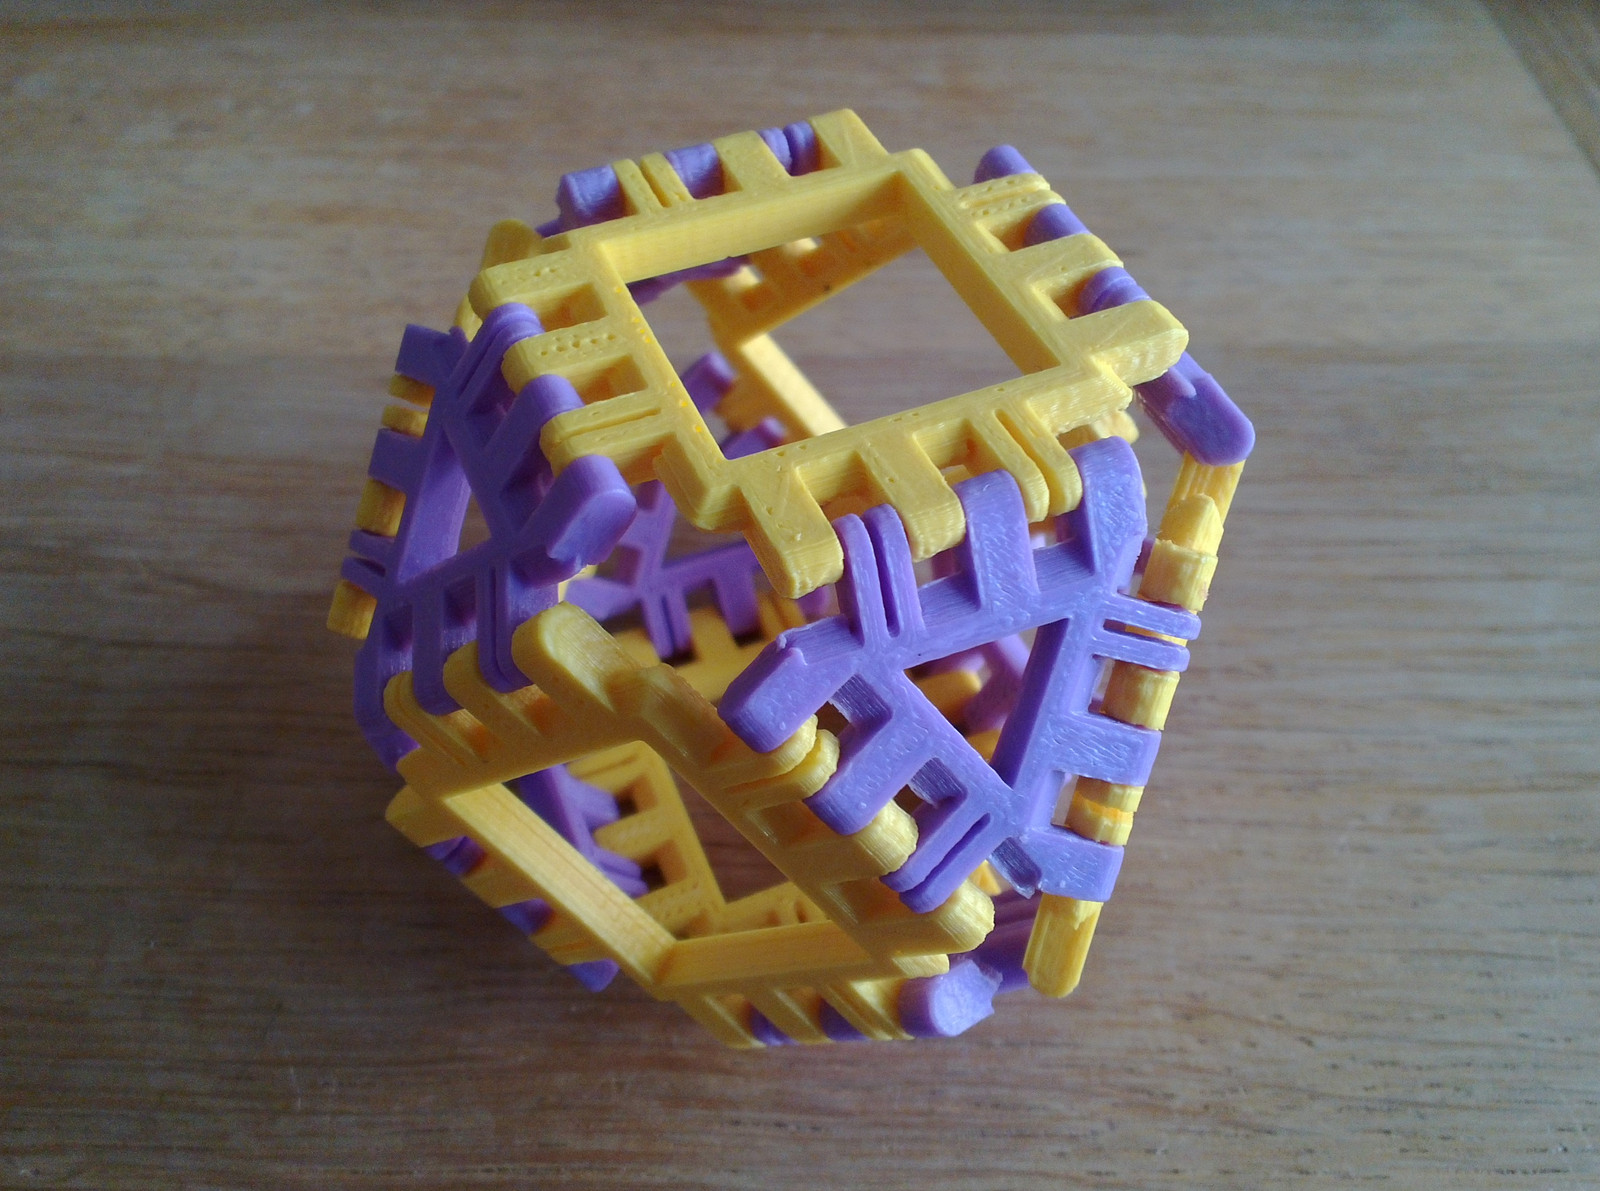 Cover image for article 'Cuboctahedron'